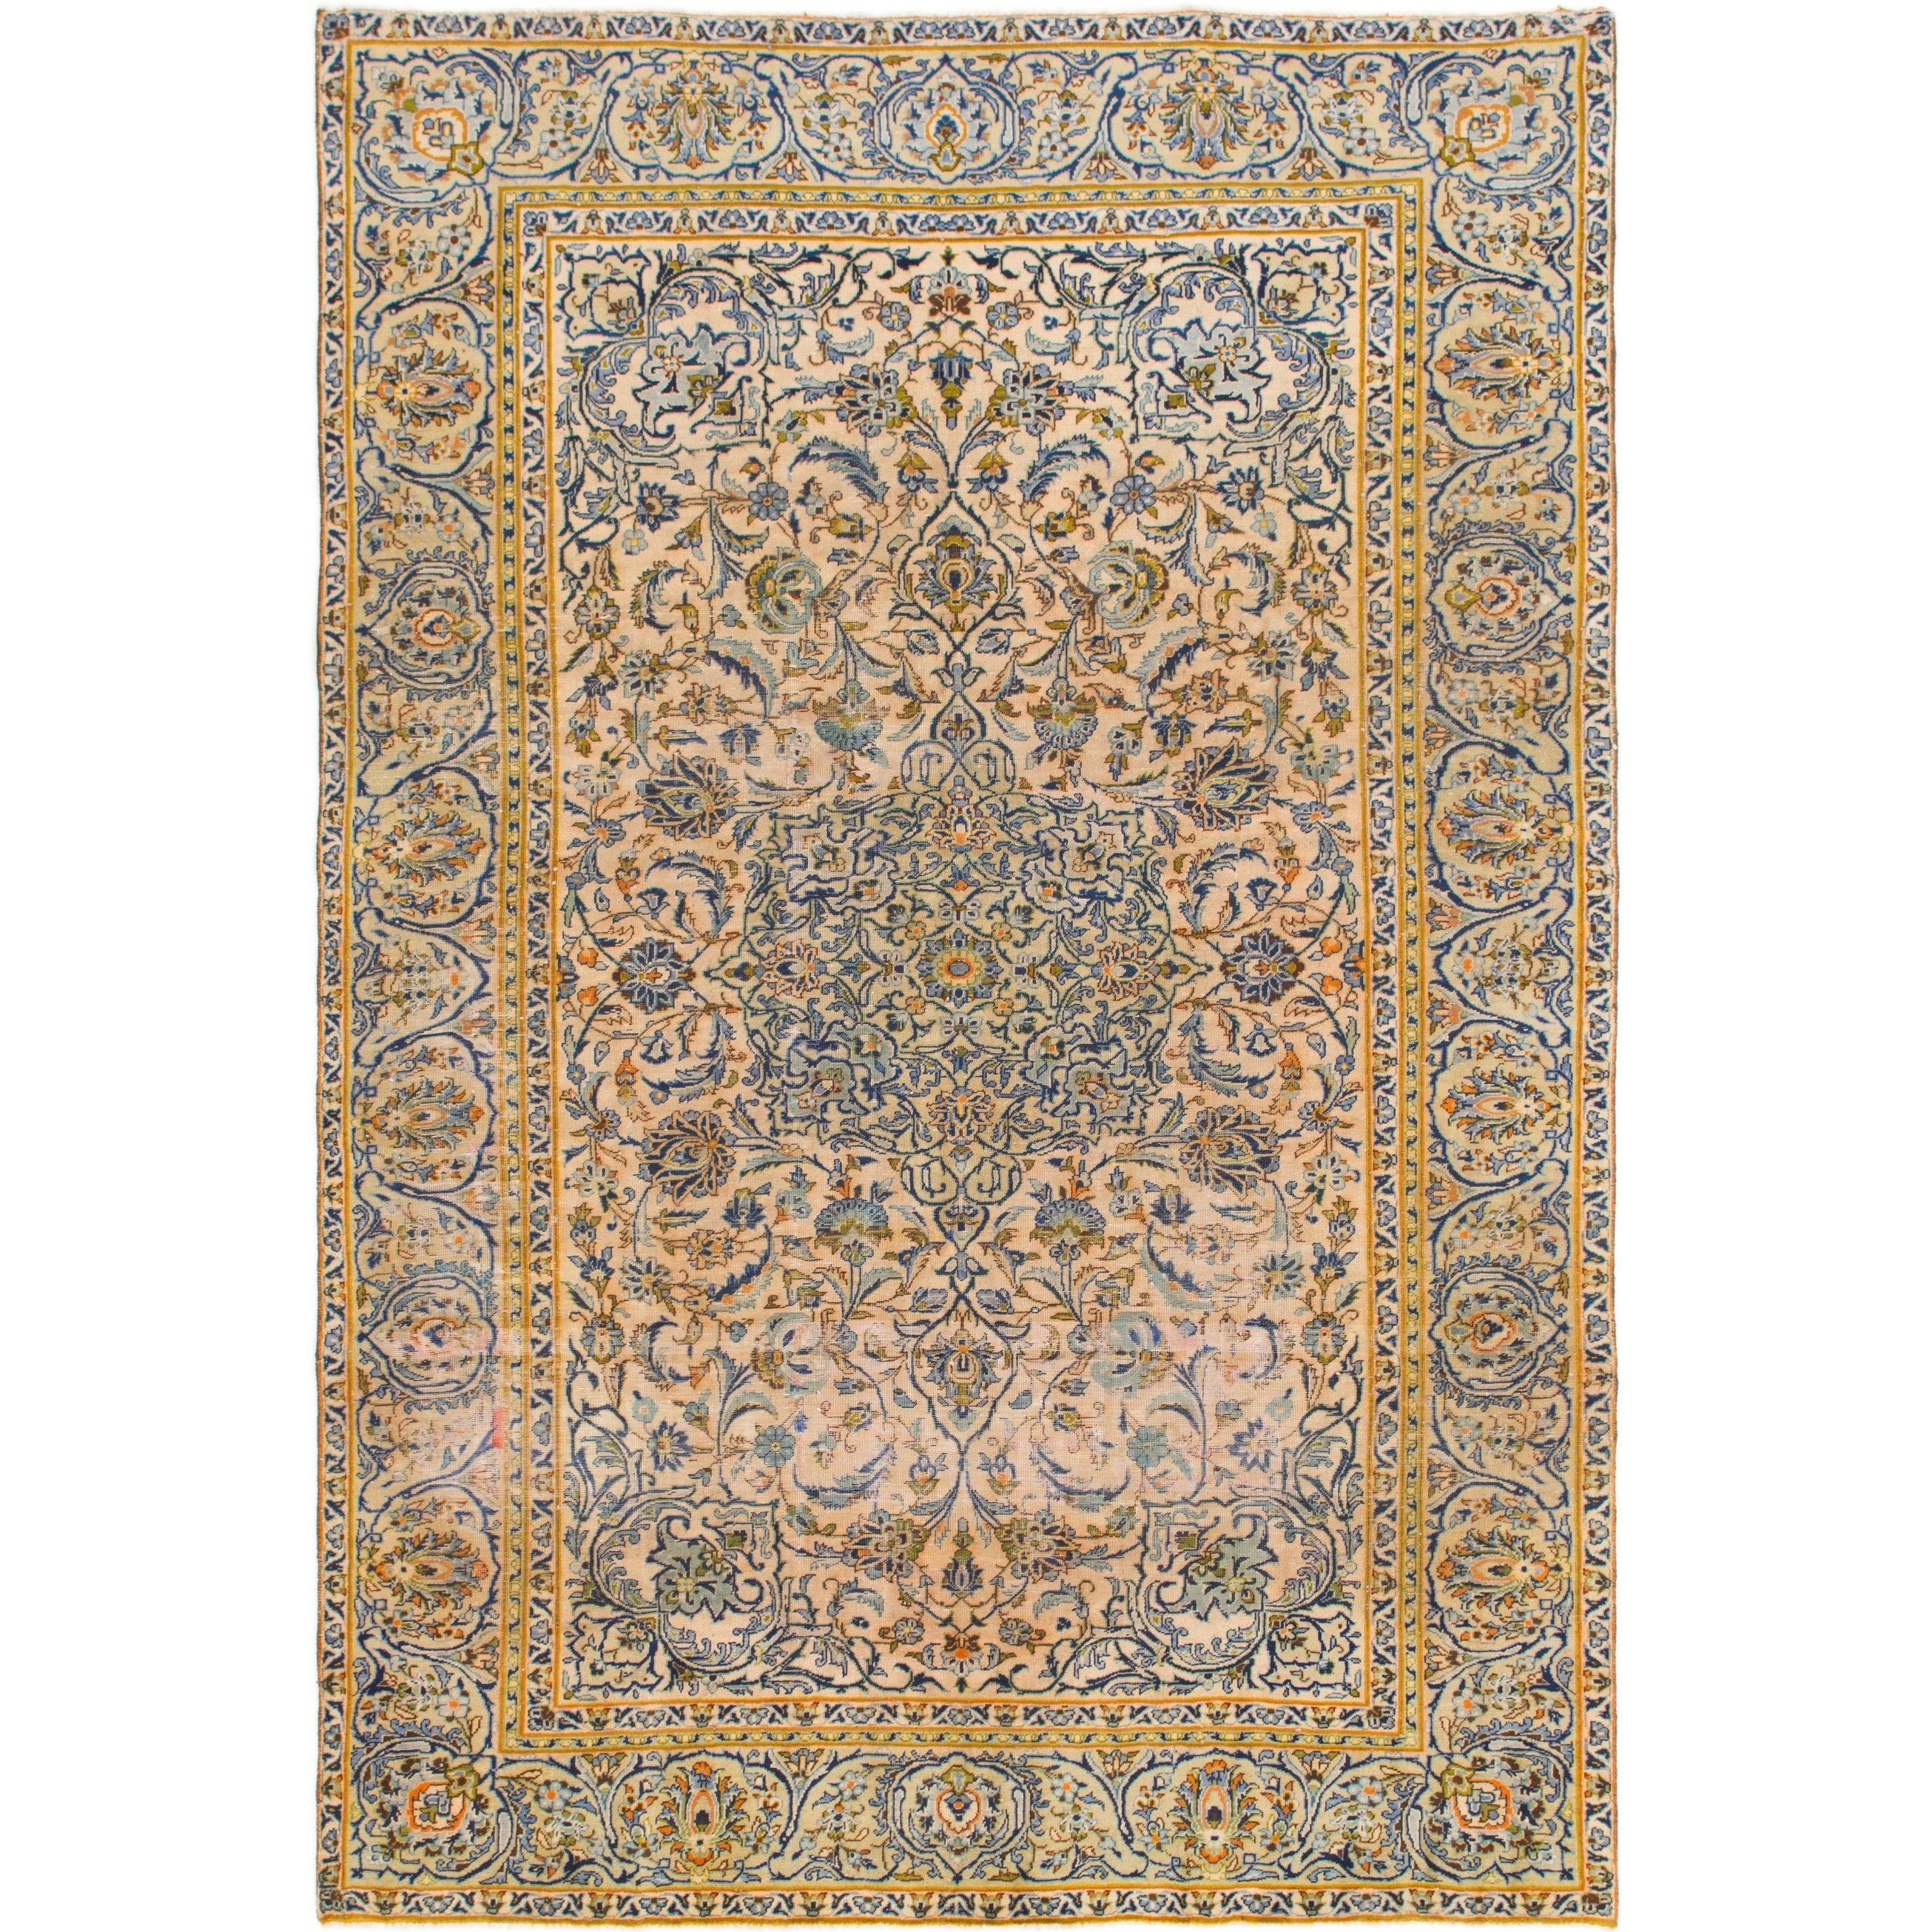 Hand Knotted Kashan Antique Wool Area Rug - 7 7 x 11 2 (Ivory - 7 7 x 11 2)